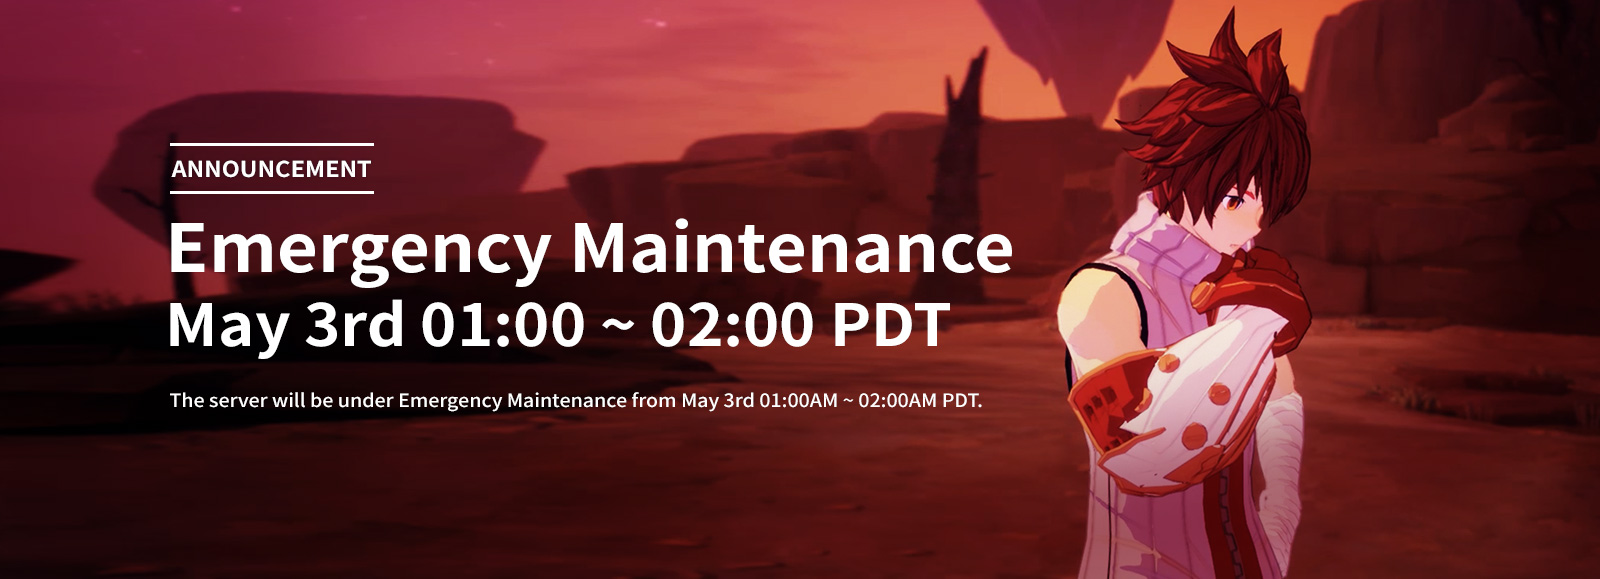 May 3rd Emergency Maintenance (01:00 ~ 02:00 PDT)